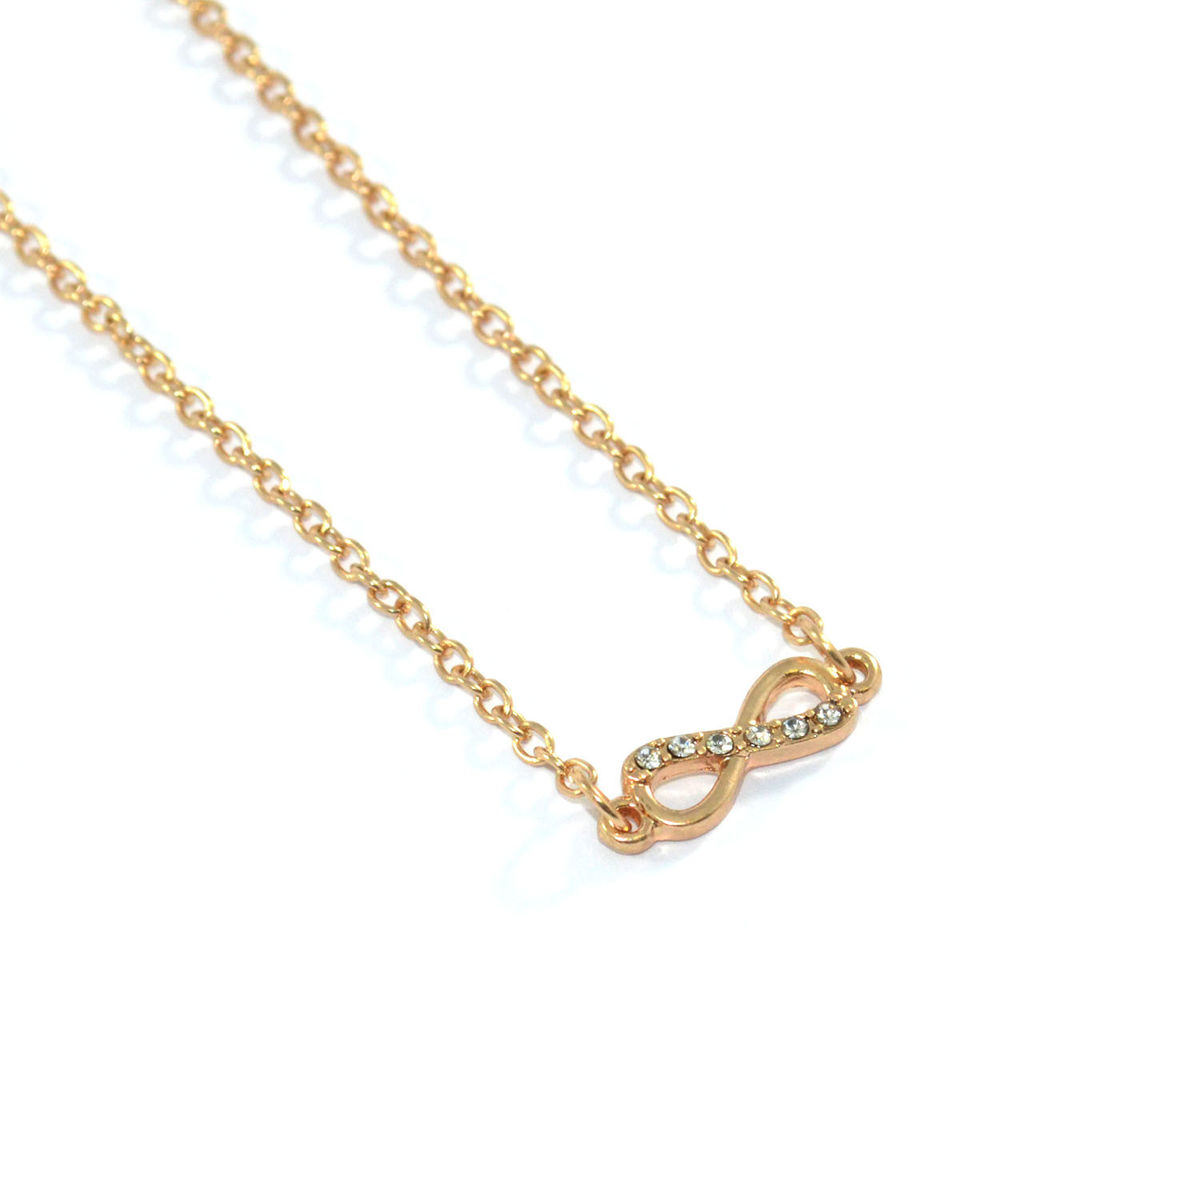 CRYSTAL INFINITY NECKLACE - Rings & Tings | Online fashion store | Shop the latest trends